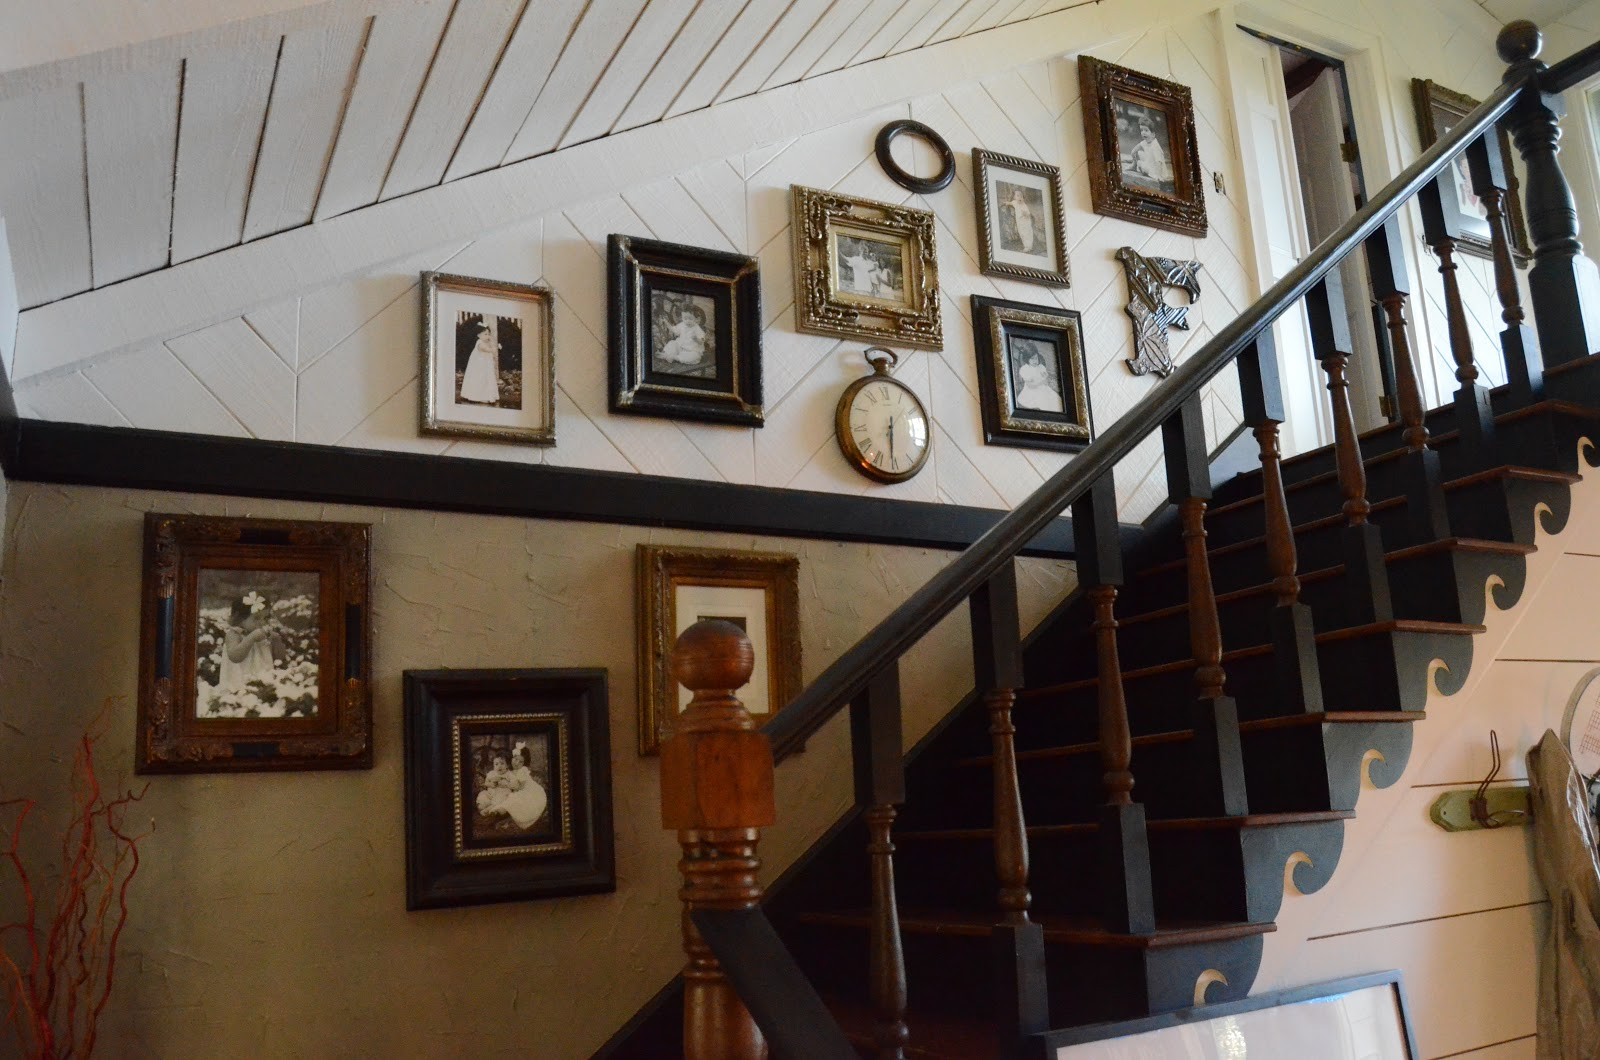 Lucysinspired framing collage at the hansel and gretel house - Hansel home ...